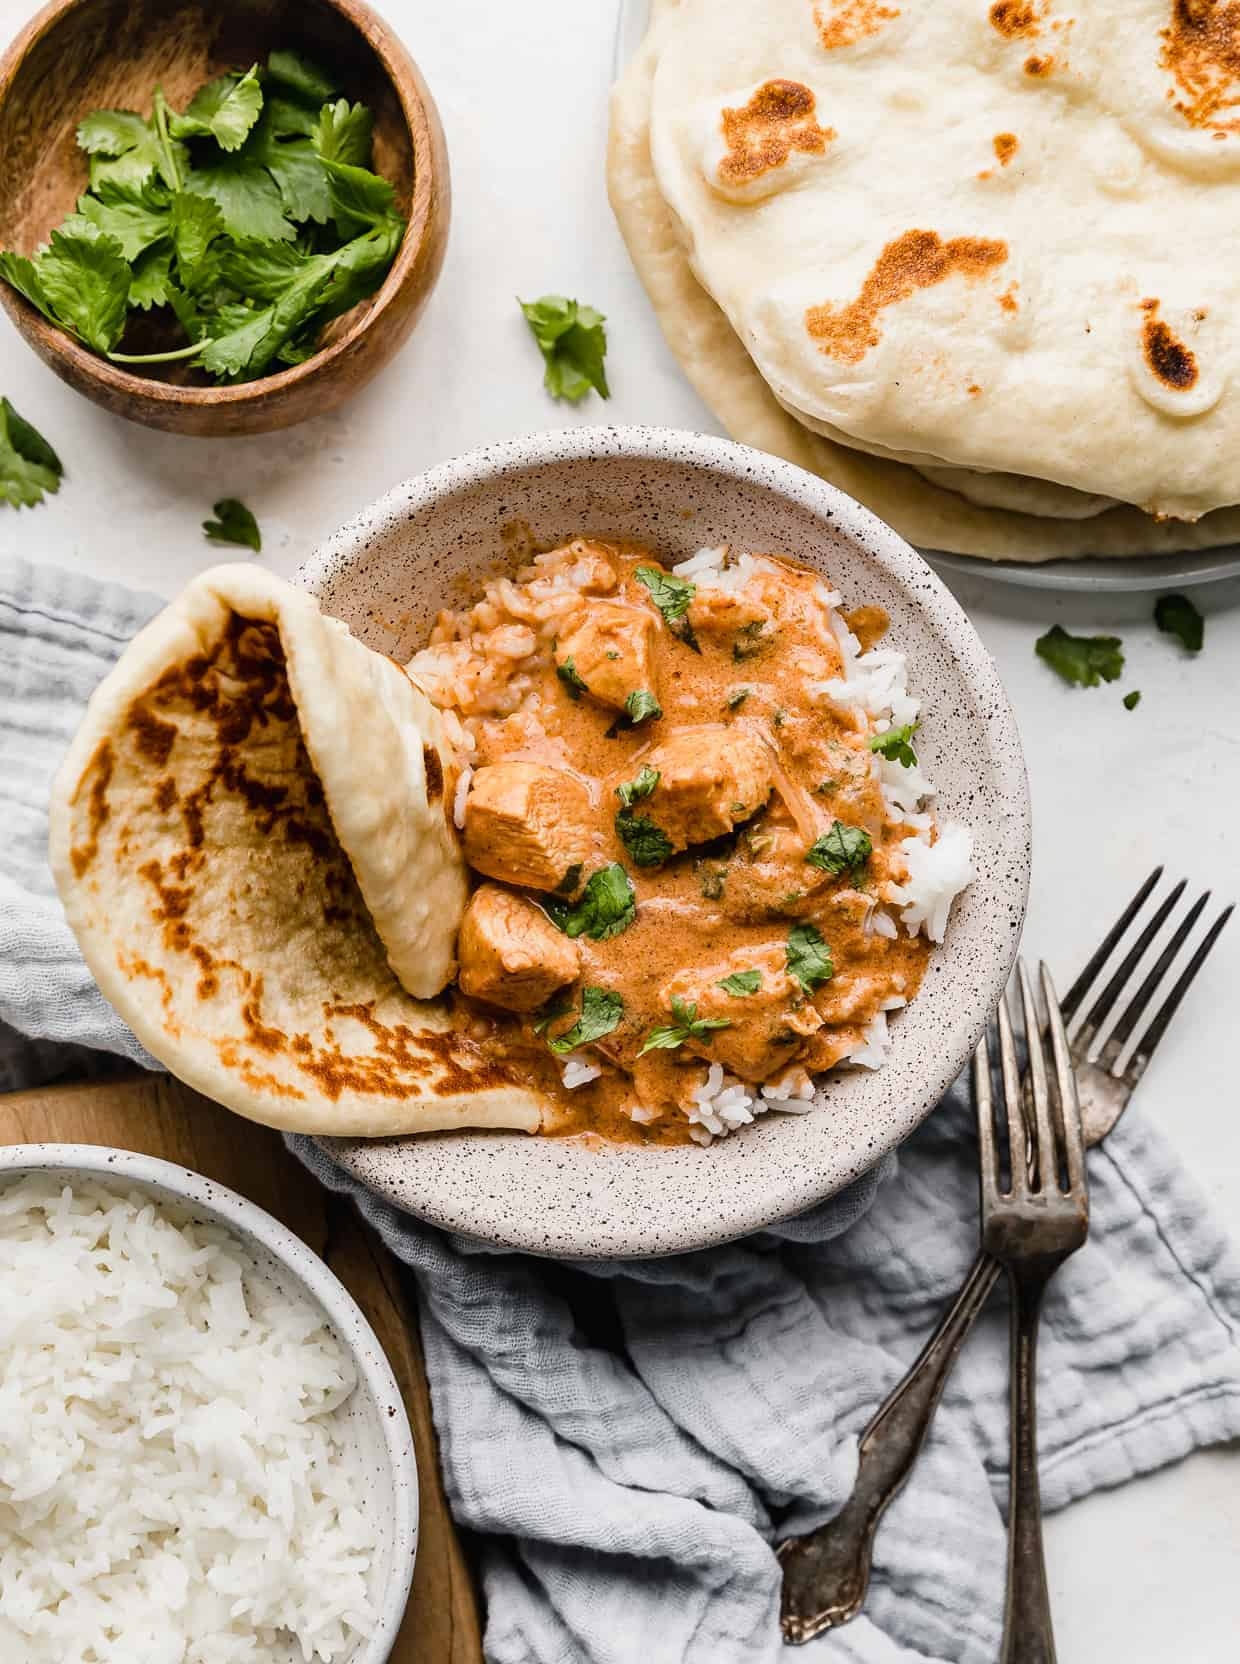 A bowl of Indian Butter Chicken Recipe surrounded by naan bread and cilantro.